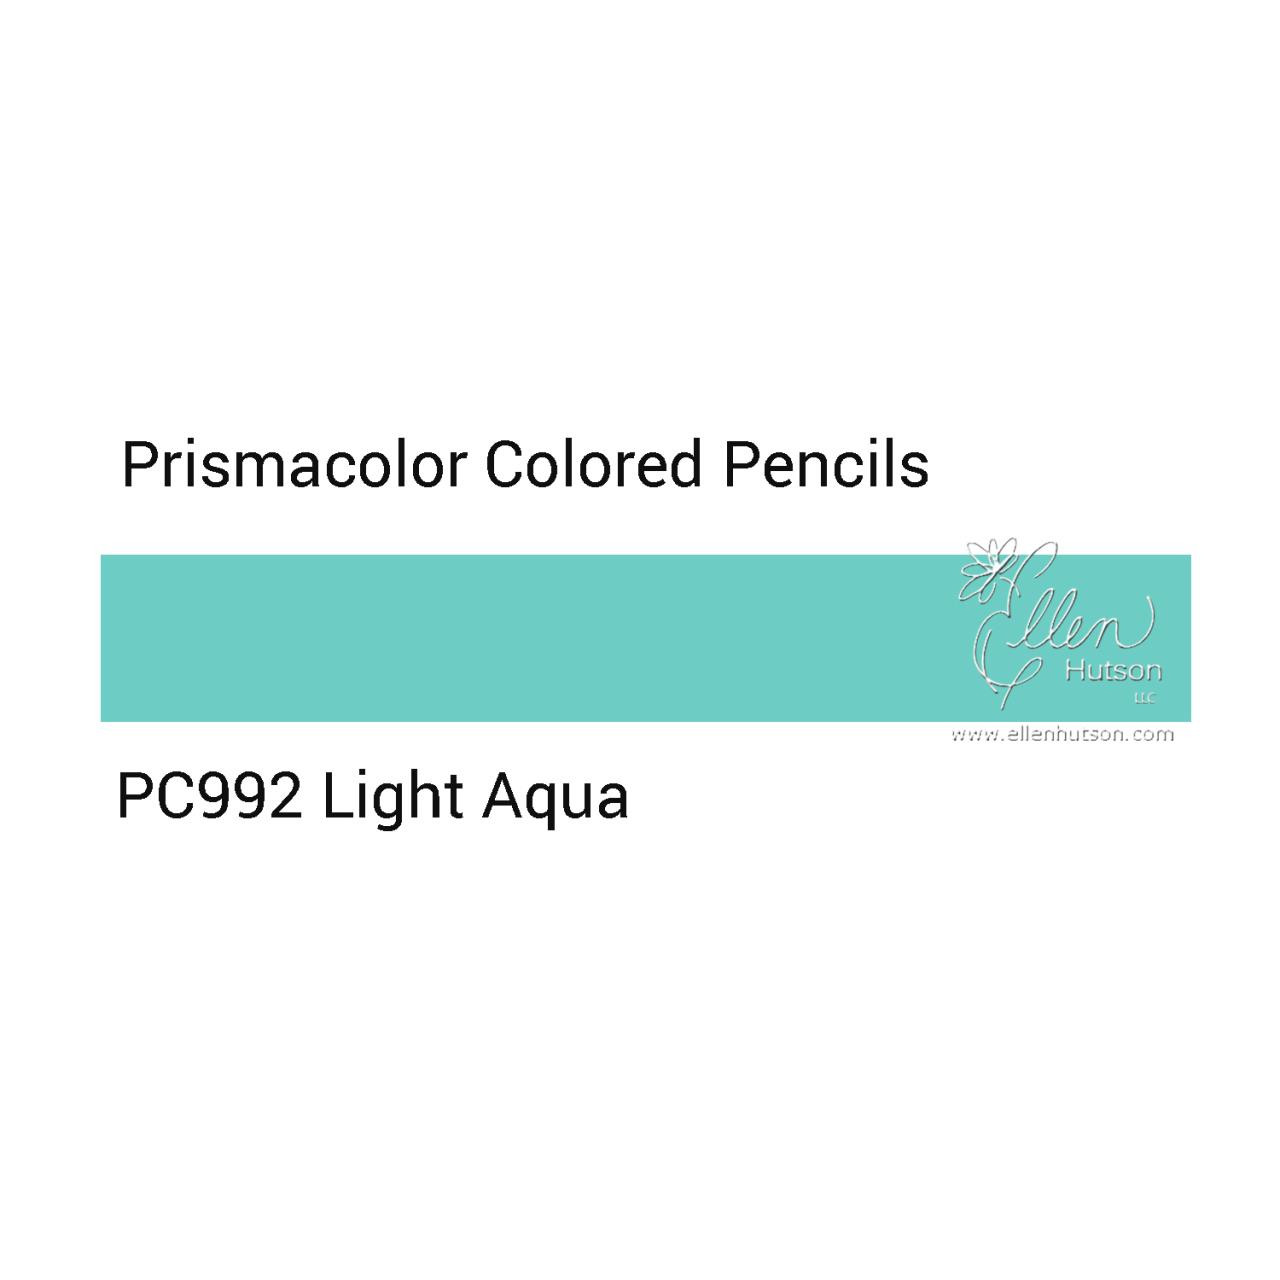 Prismacolor Premier Colored Pencils, Light Aqua PC992 - 070735033802